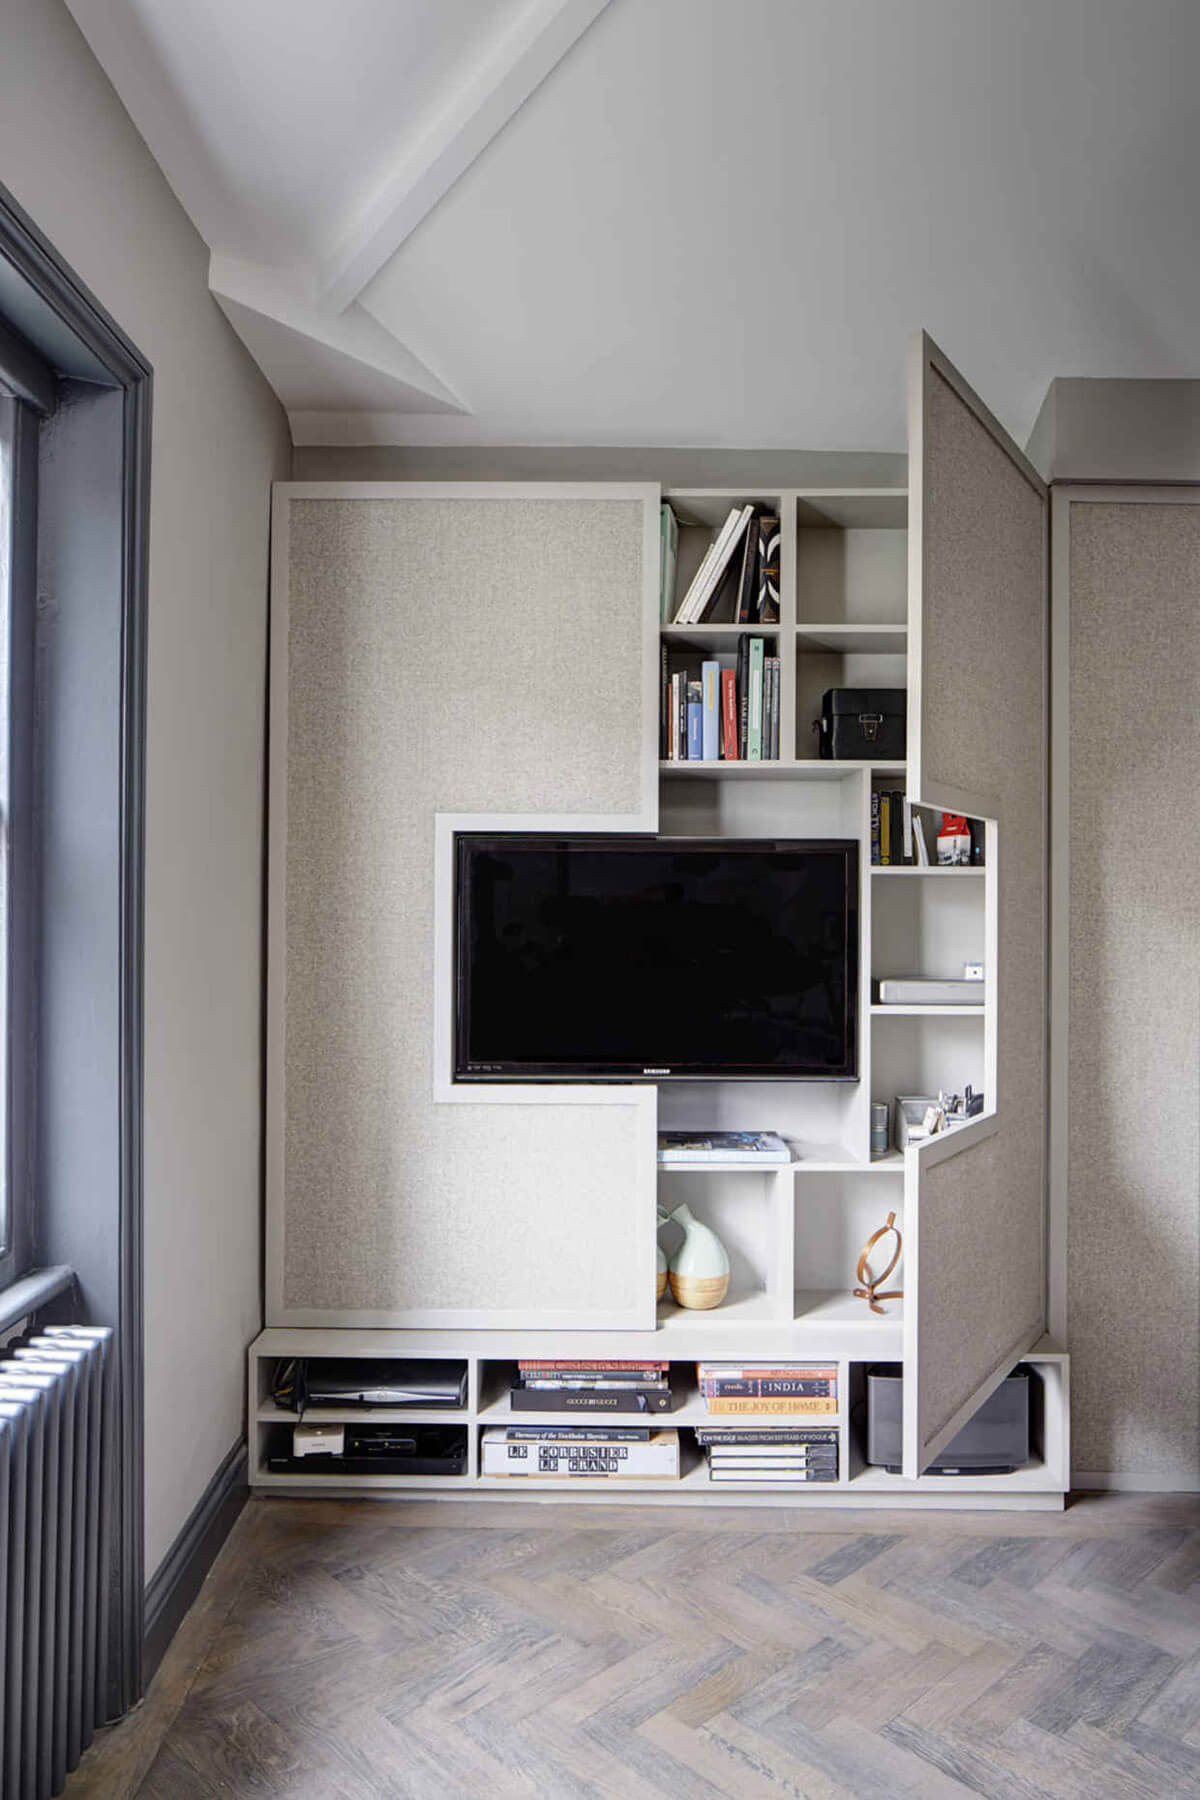 25 Best Built In Storage Ideas And Designs For 2019